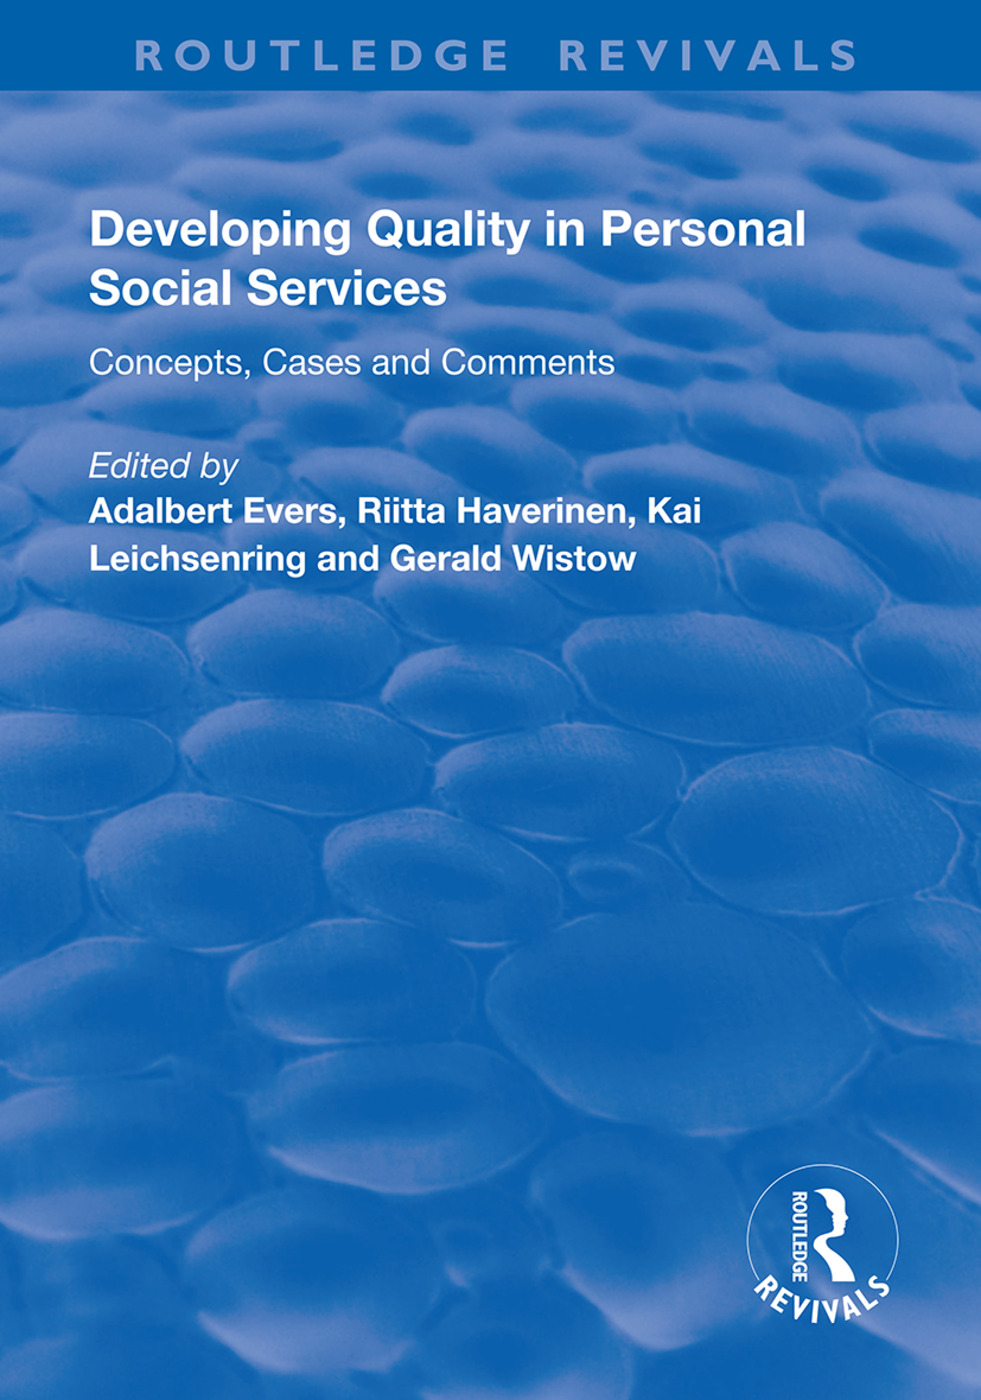 Developing Quality in Personal Social Services: Concepts, Cases and Comments book cover